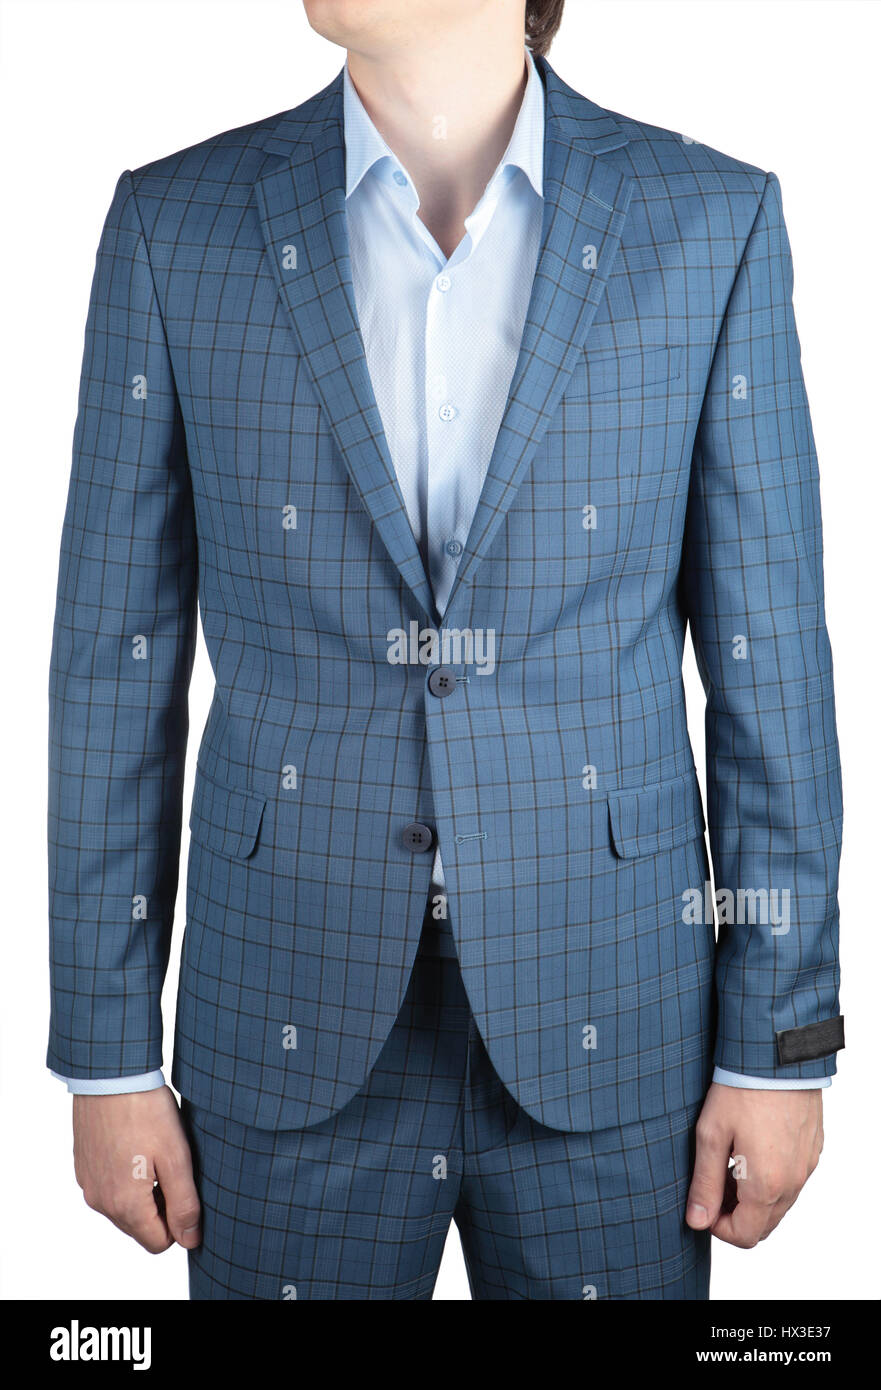 Stylish fashionable light blue plaid blazer men wedding suit ...